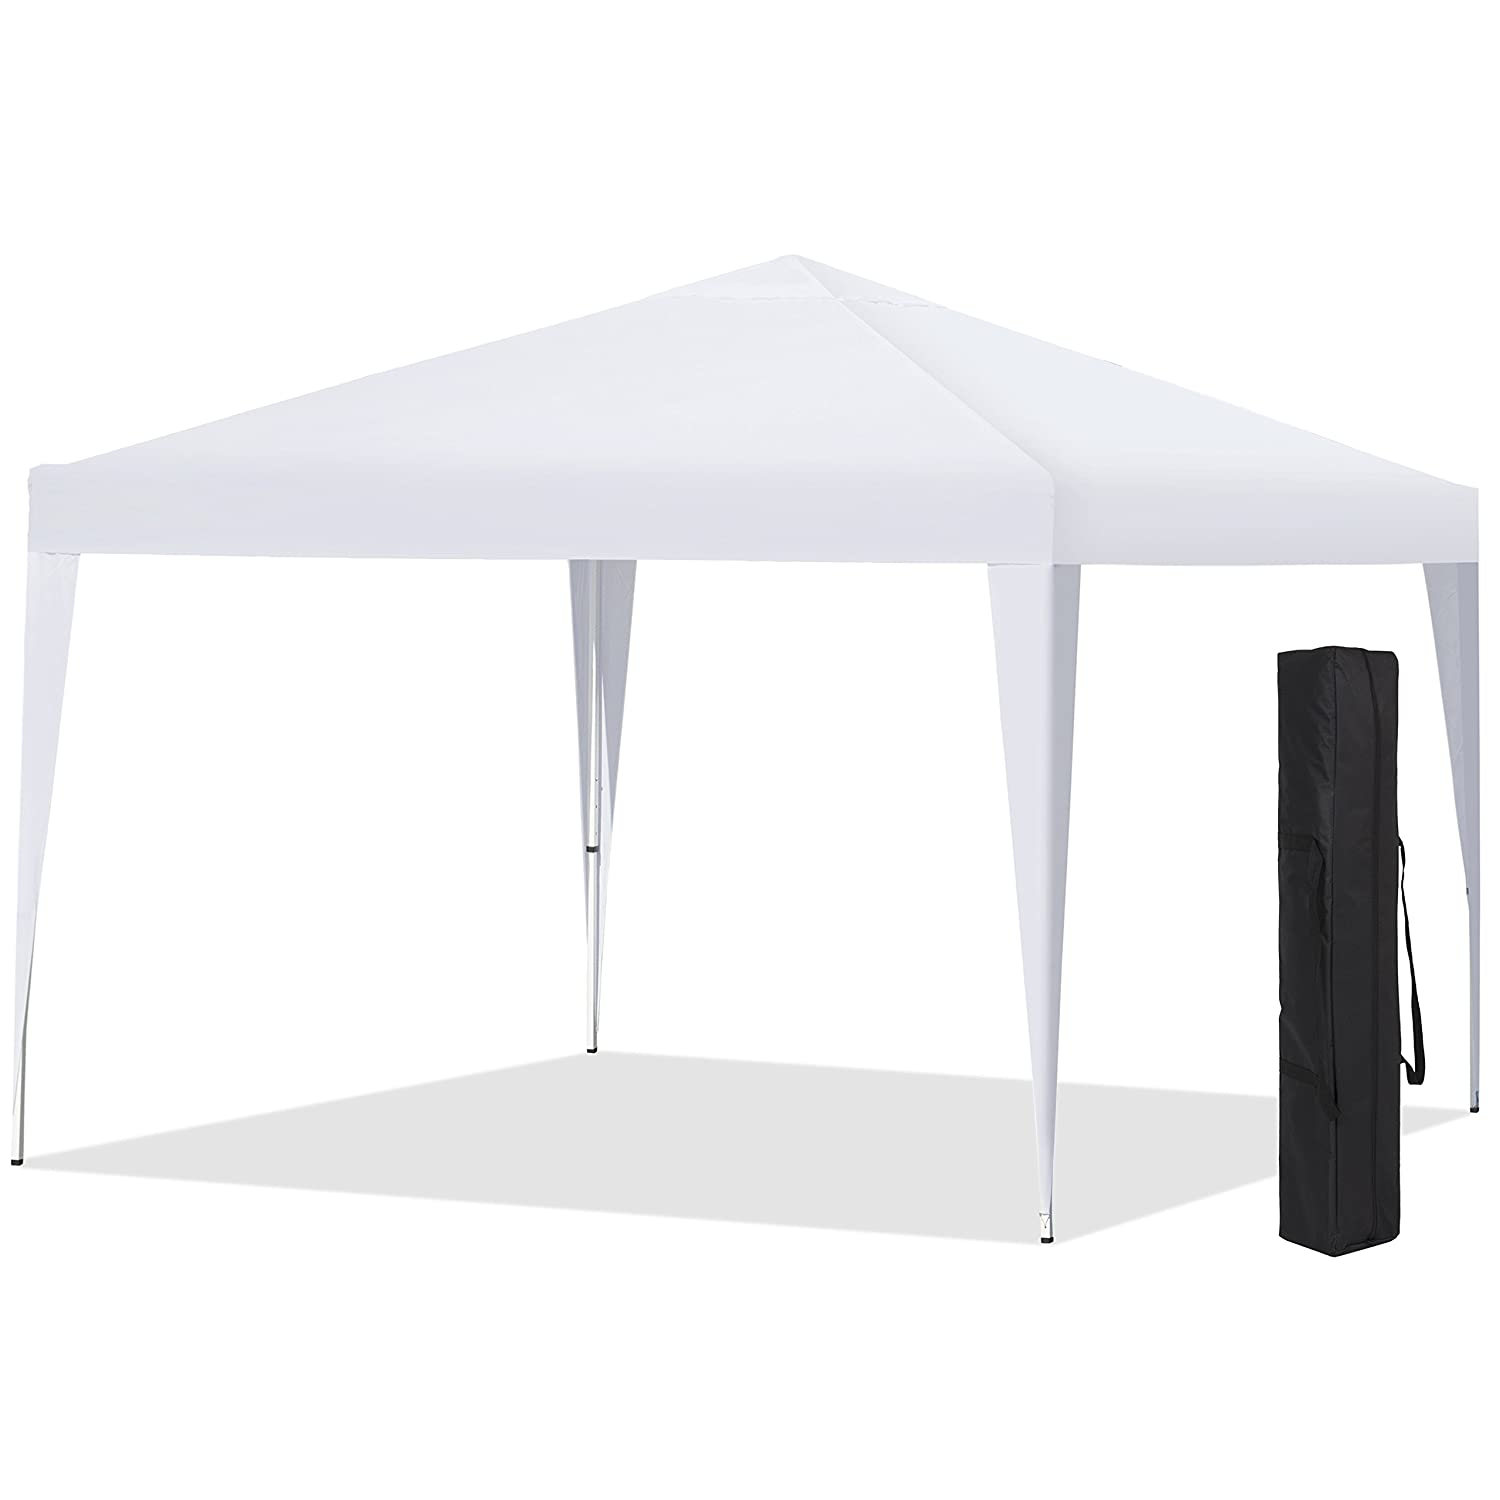 Best Choice Products 10u0027X10u0027 EZ Pop Up Canopy Tent W/ Carrying Case  sc 1 st  Amazon.com & Amazon.com: Canopies - Canopies Gazebos u0026 Pergolas: Patio Lawn ...